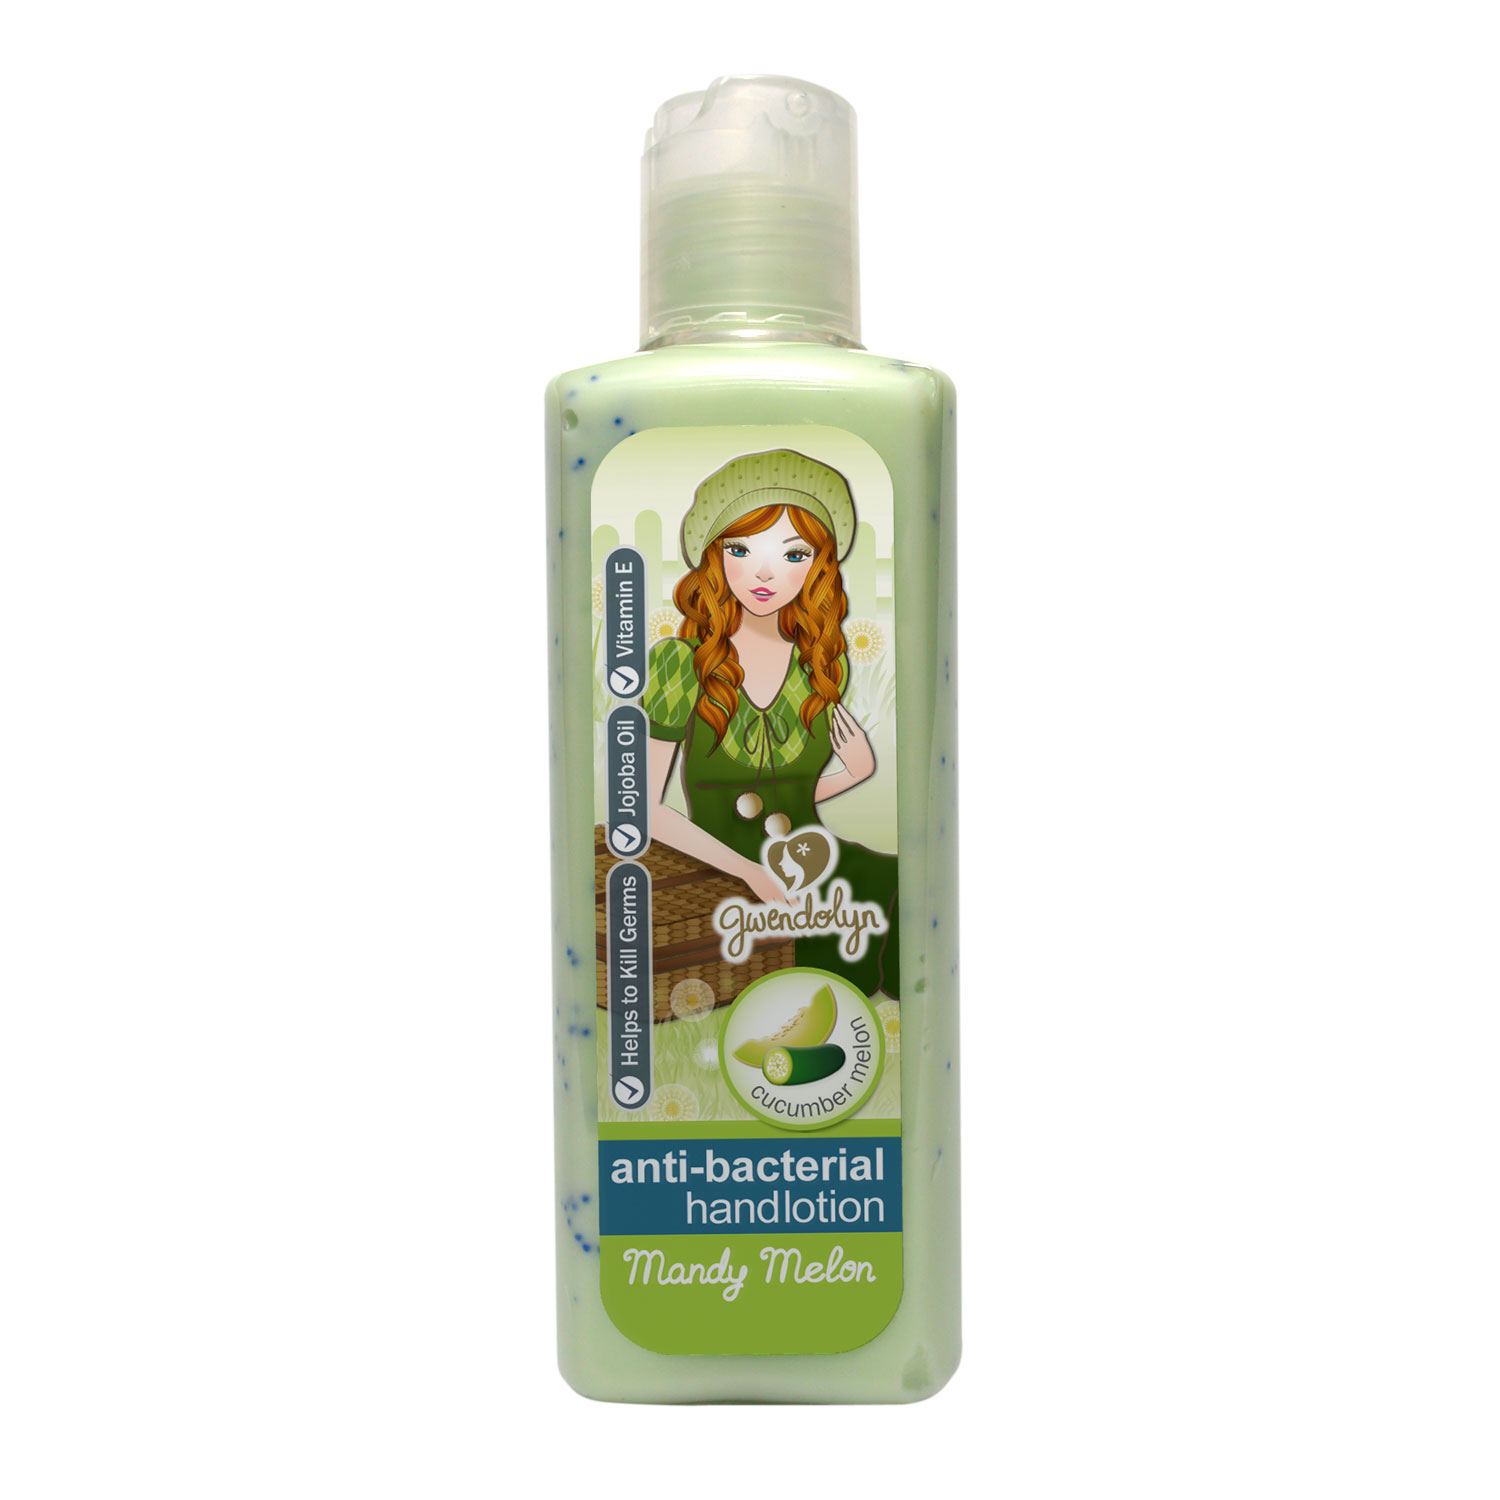 Gwendolyn Anti Bacterial Hand Lotion Mandy Melon 100ml